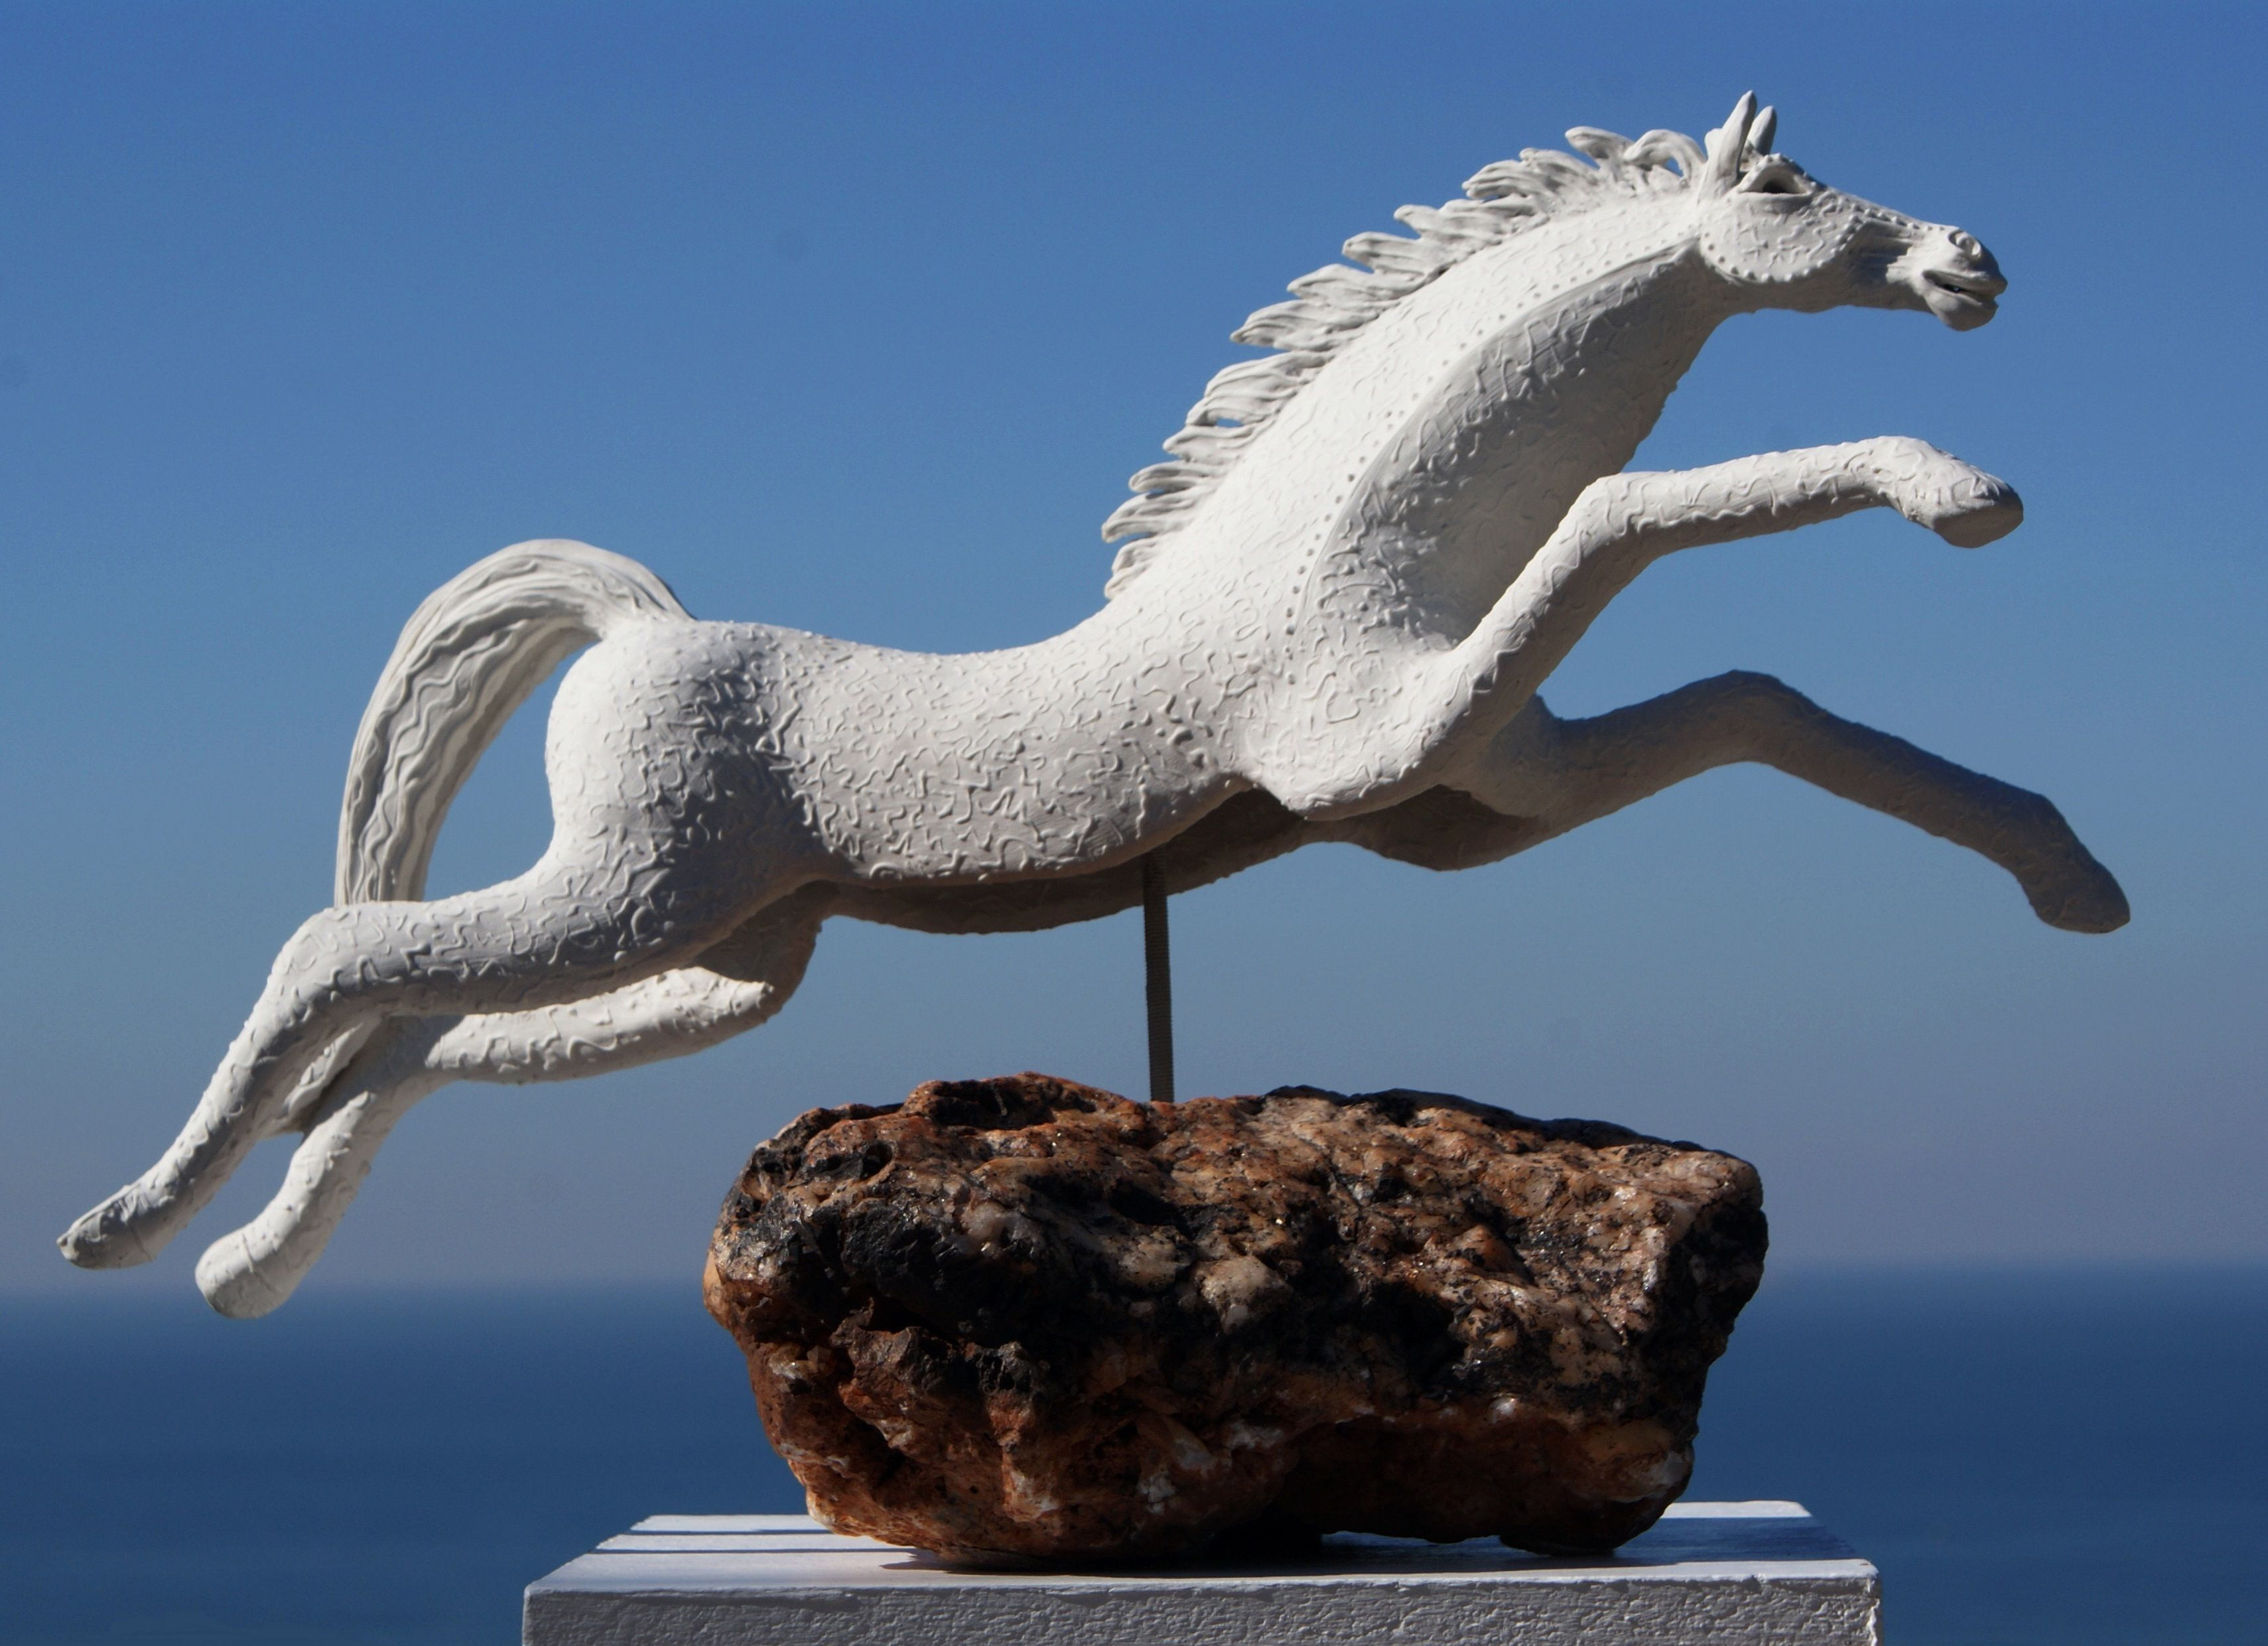 """Carol Hayward Fell - South Africa. """"Leaping Horse"""" High fired Stoneware and  porcelain clay, South African igneous volcanic rock and stainless … 